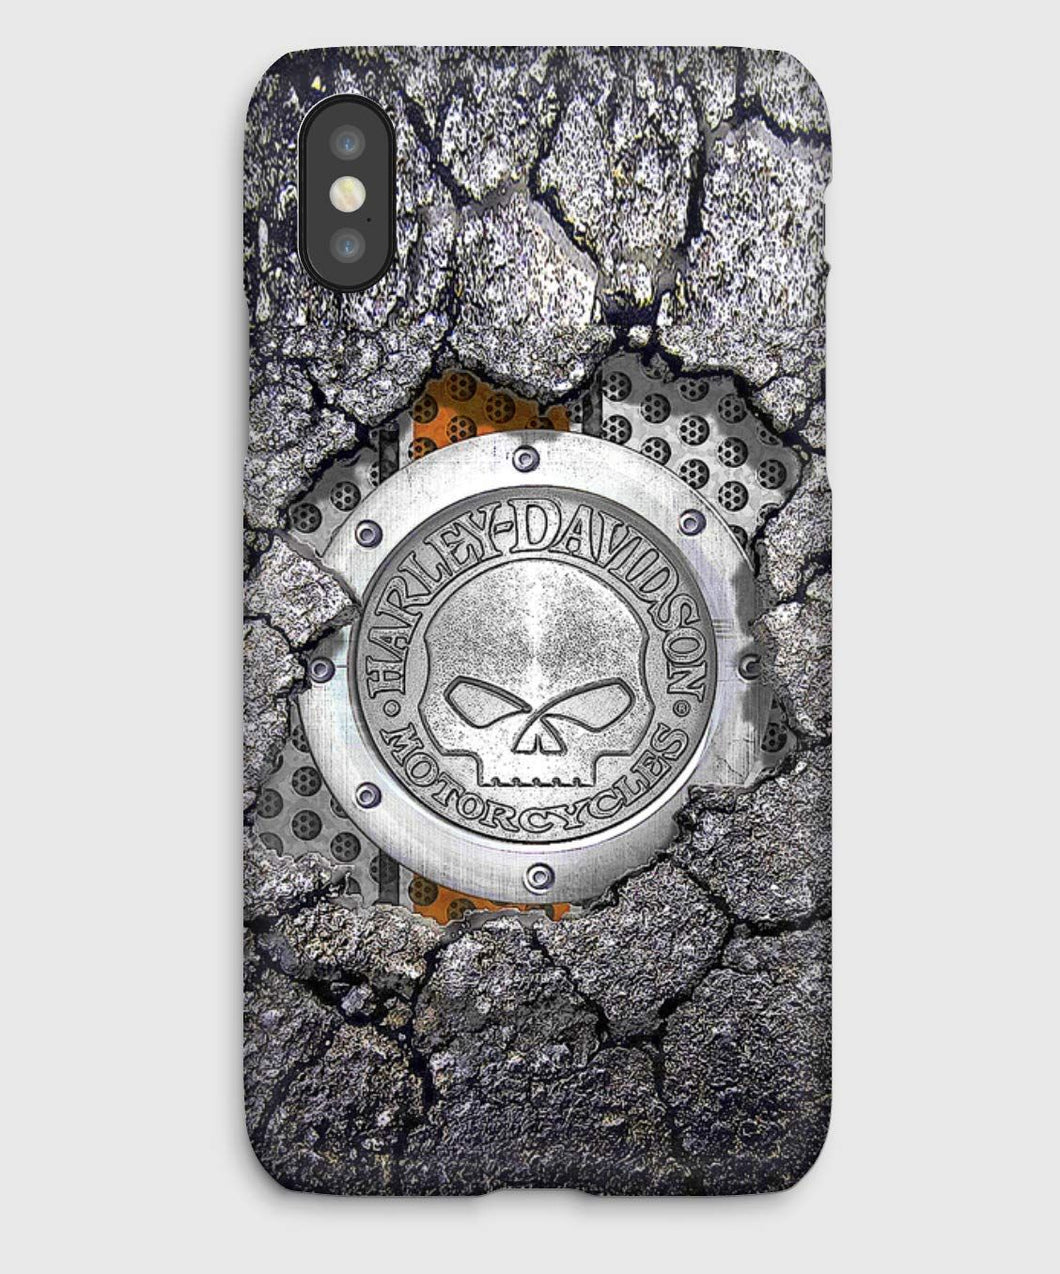 cover iphone x harley davidson